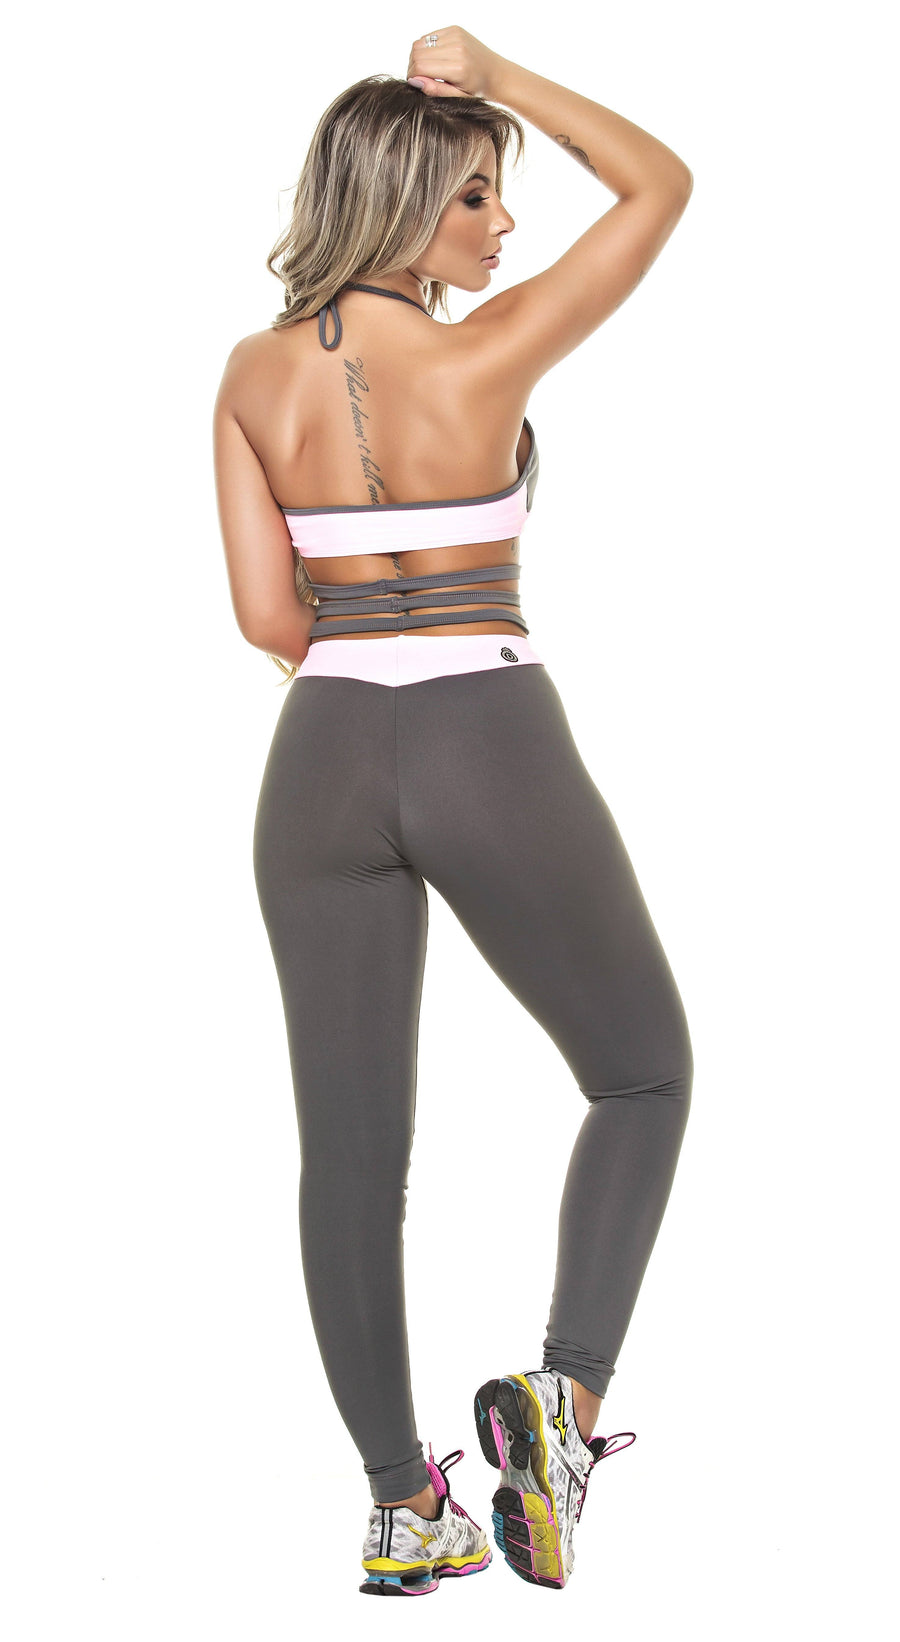 Brazilian Workout Jumpsuit - Leblon Strappy Gray & Pink